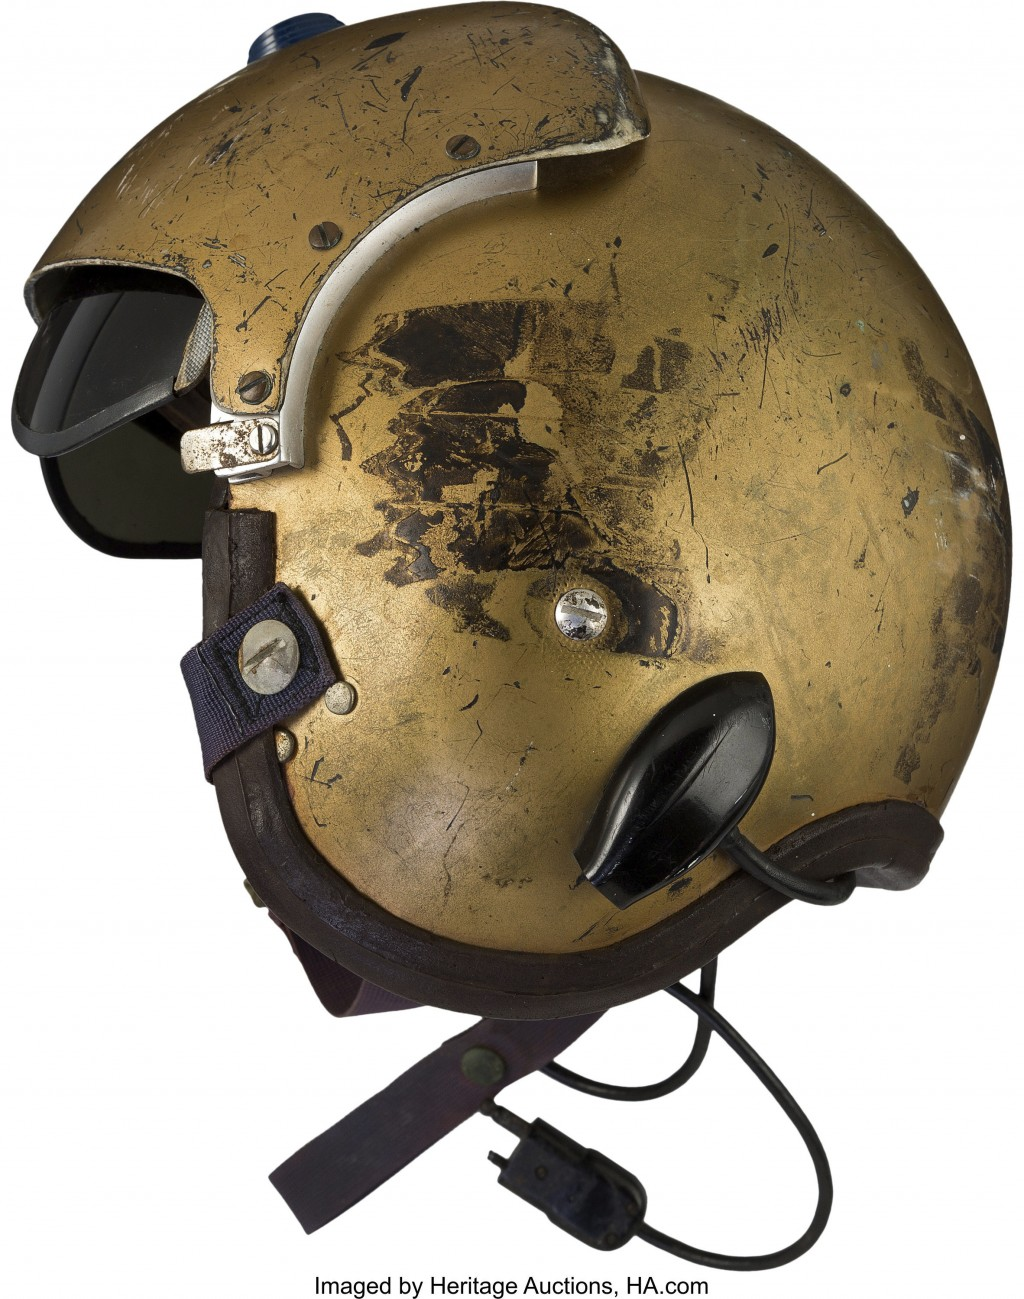 This undated photo provided by Heritage Auctions shows a helmet worn by John Glenn during the history-making flight, dubbed Project Bullet, in which t...